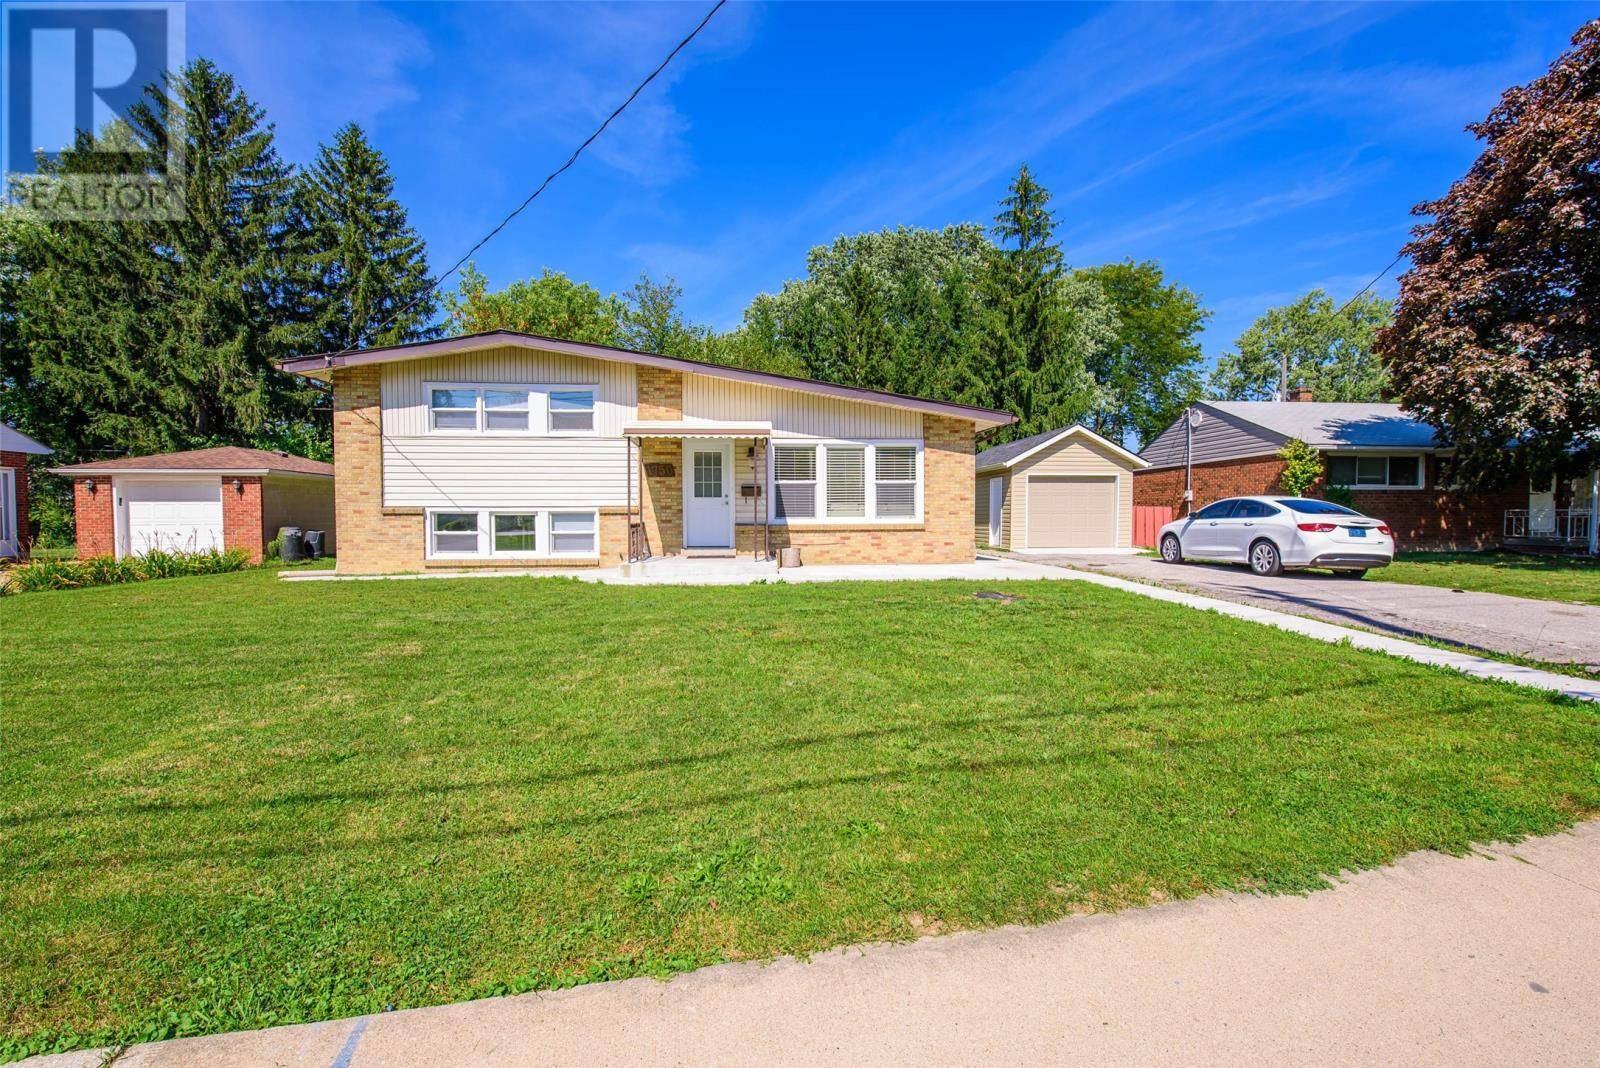 House for sale at 1750 Grand Marais Rd West Windsor Ontario - MLS: 19025784